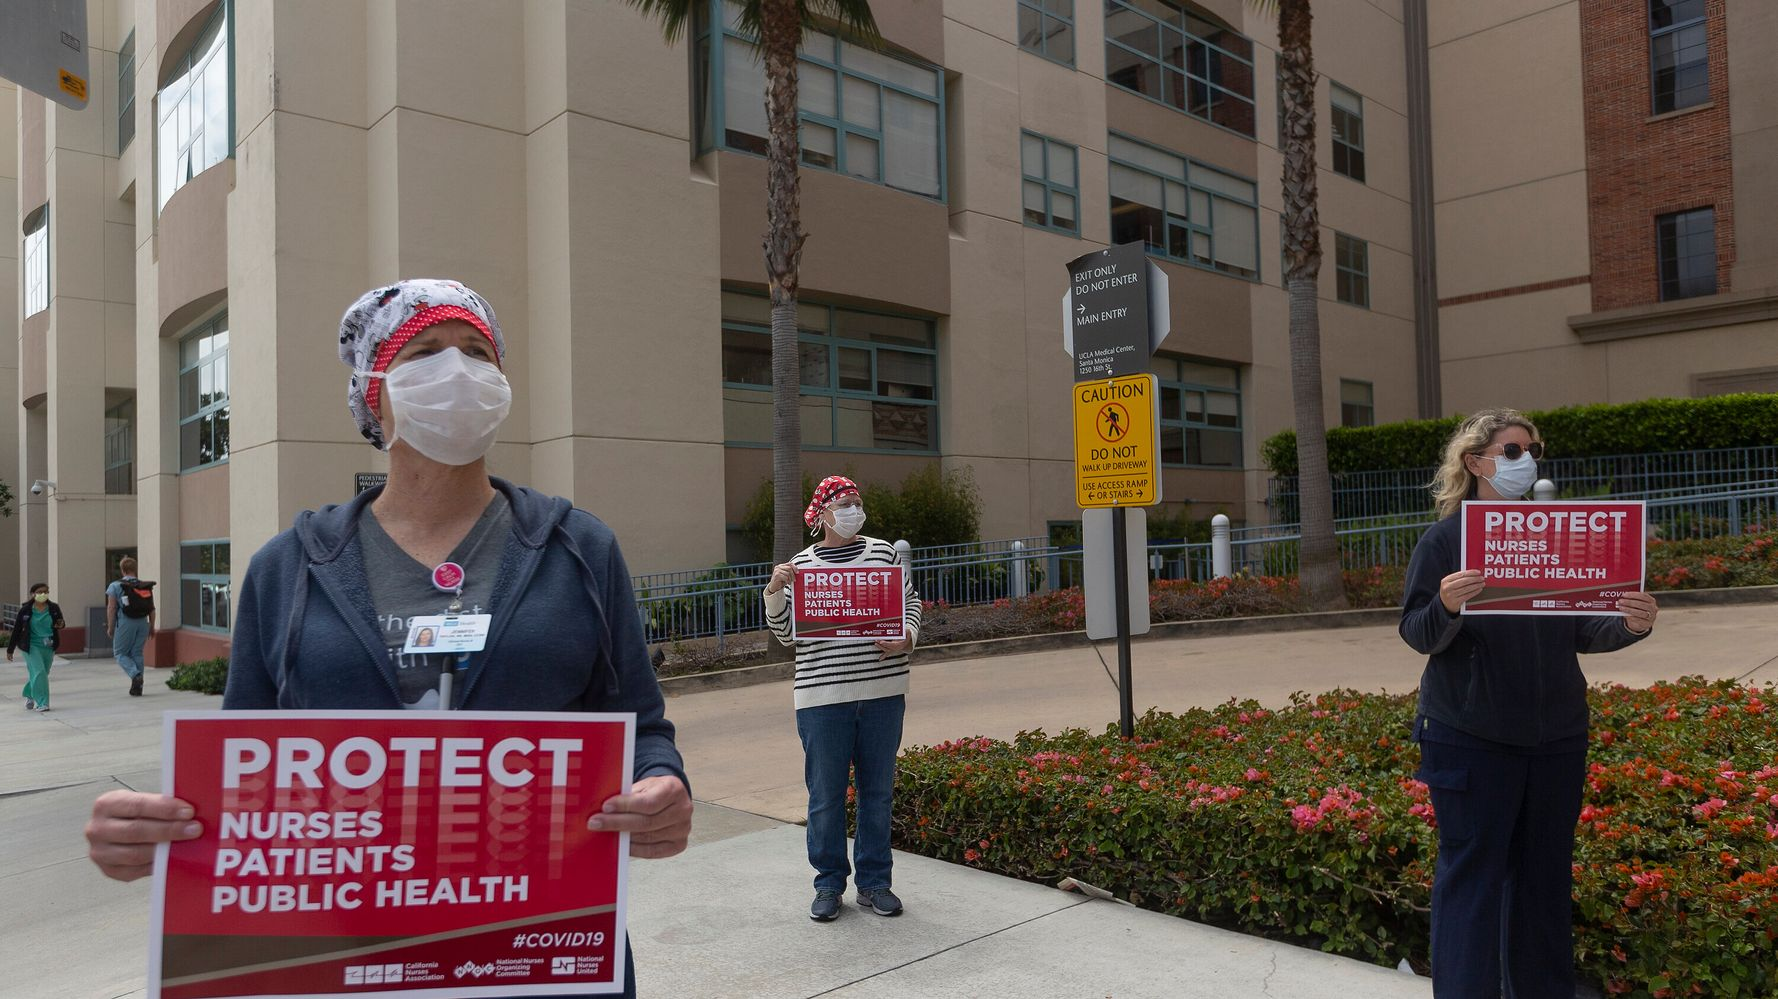 Nurses Suspended For Declining To Offer COVID-19 Care Without N95 Mask